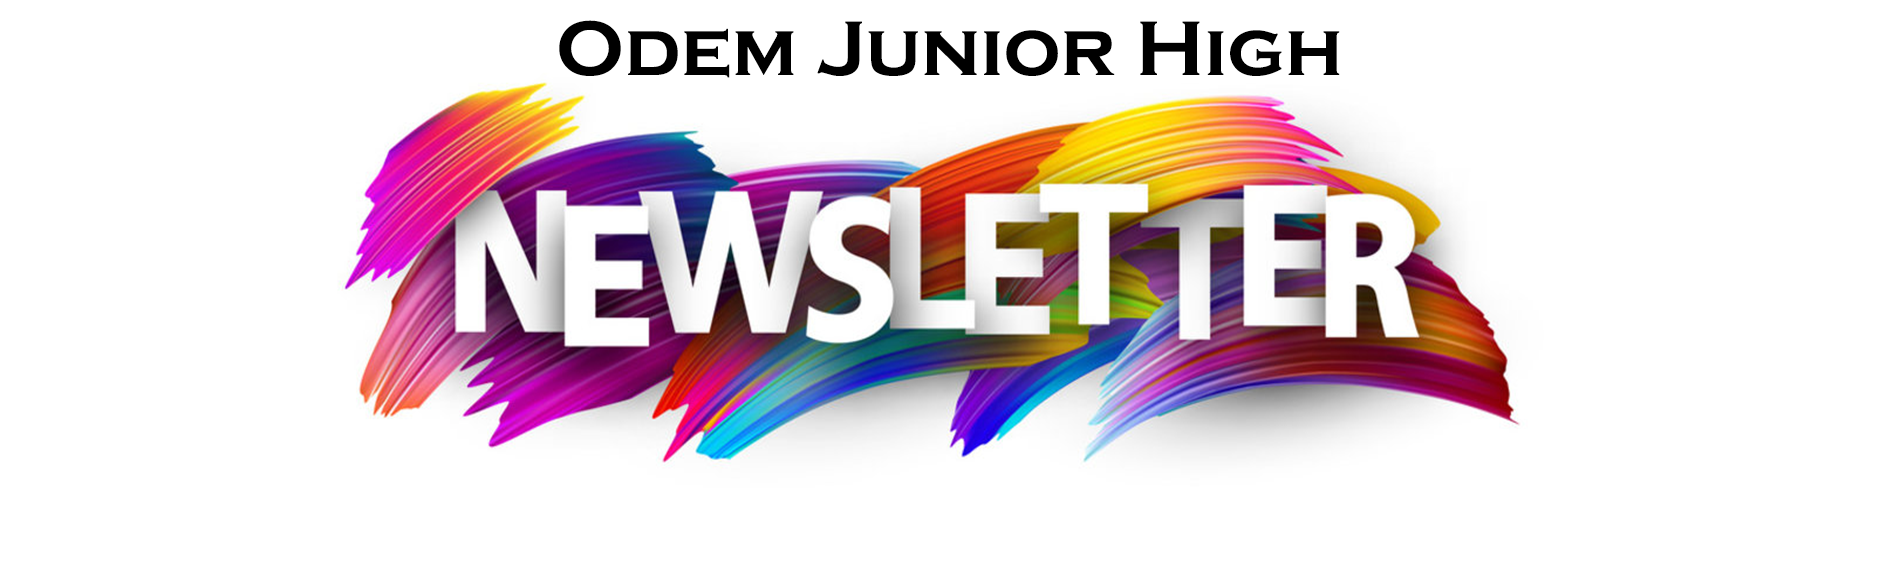 Newsletter redirection for OJH